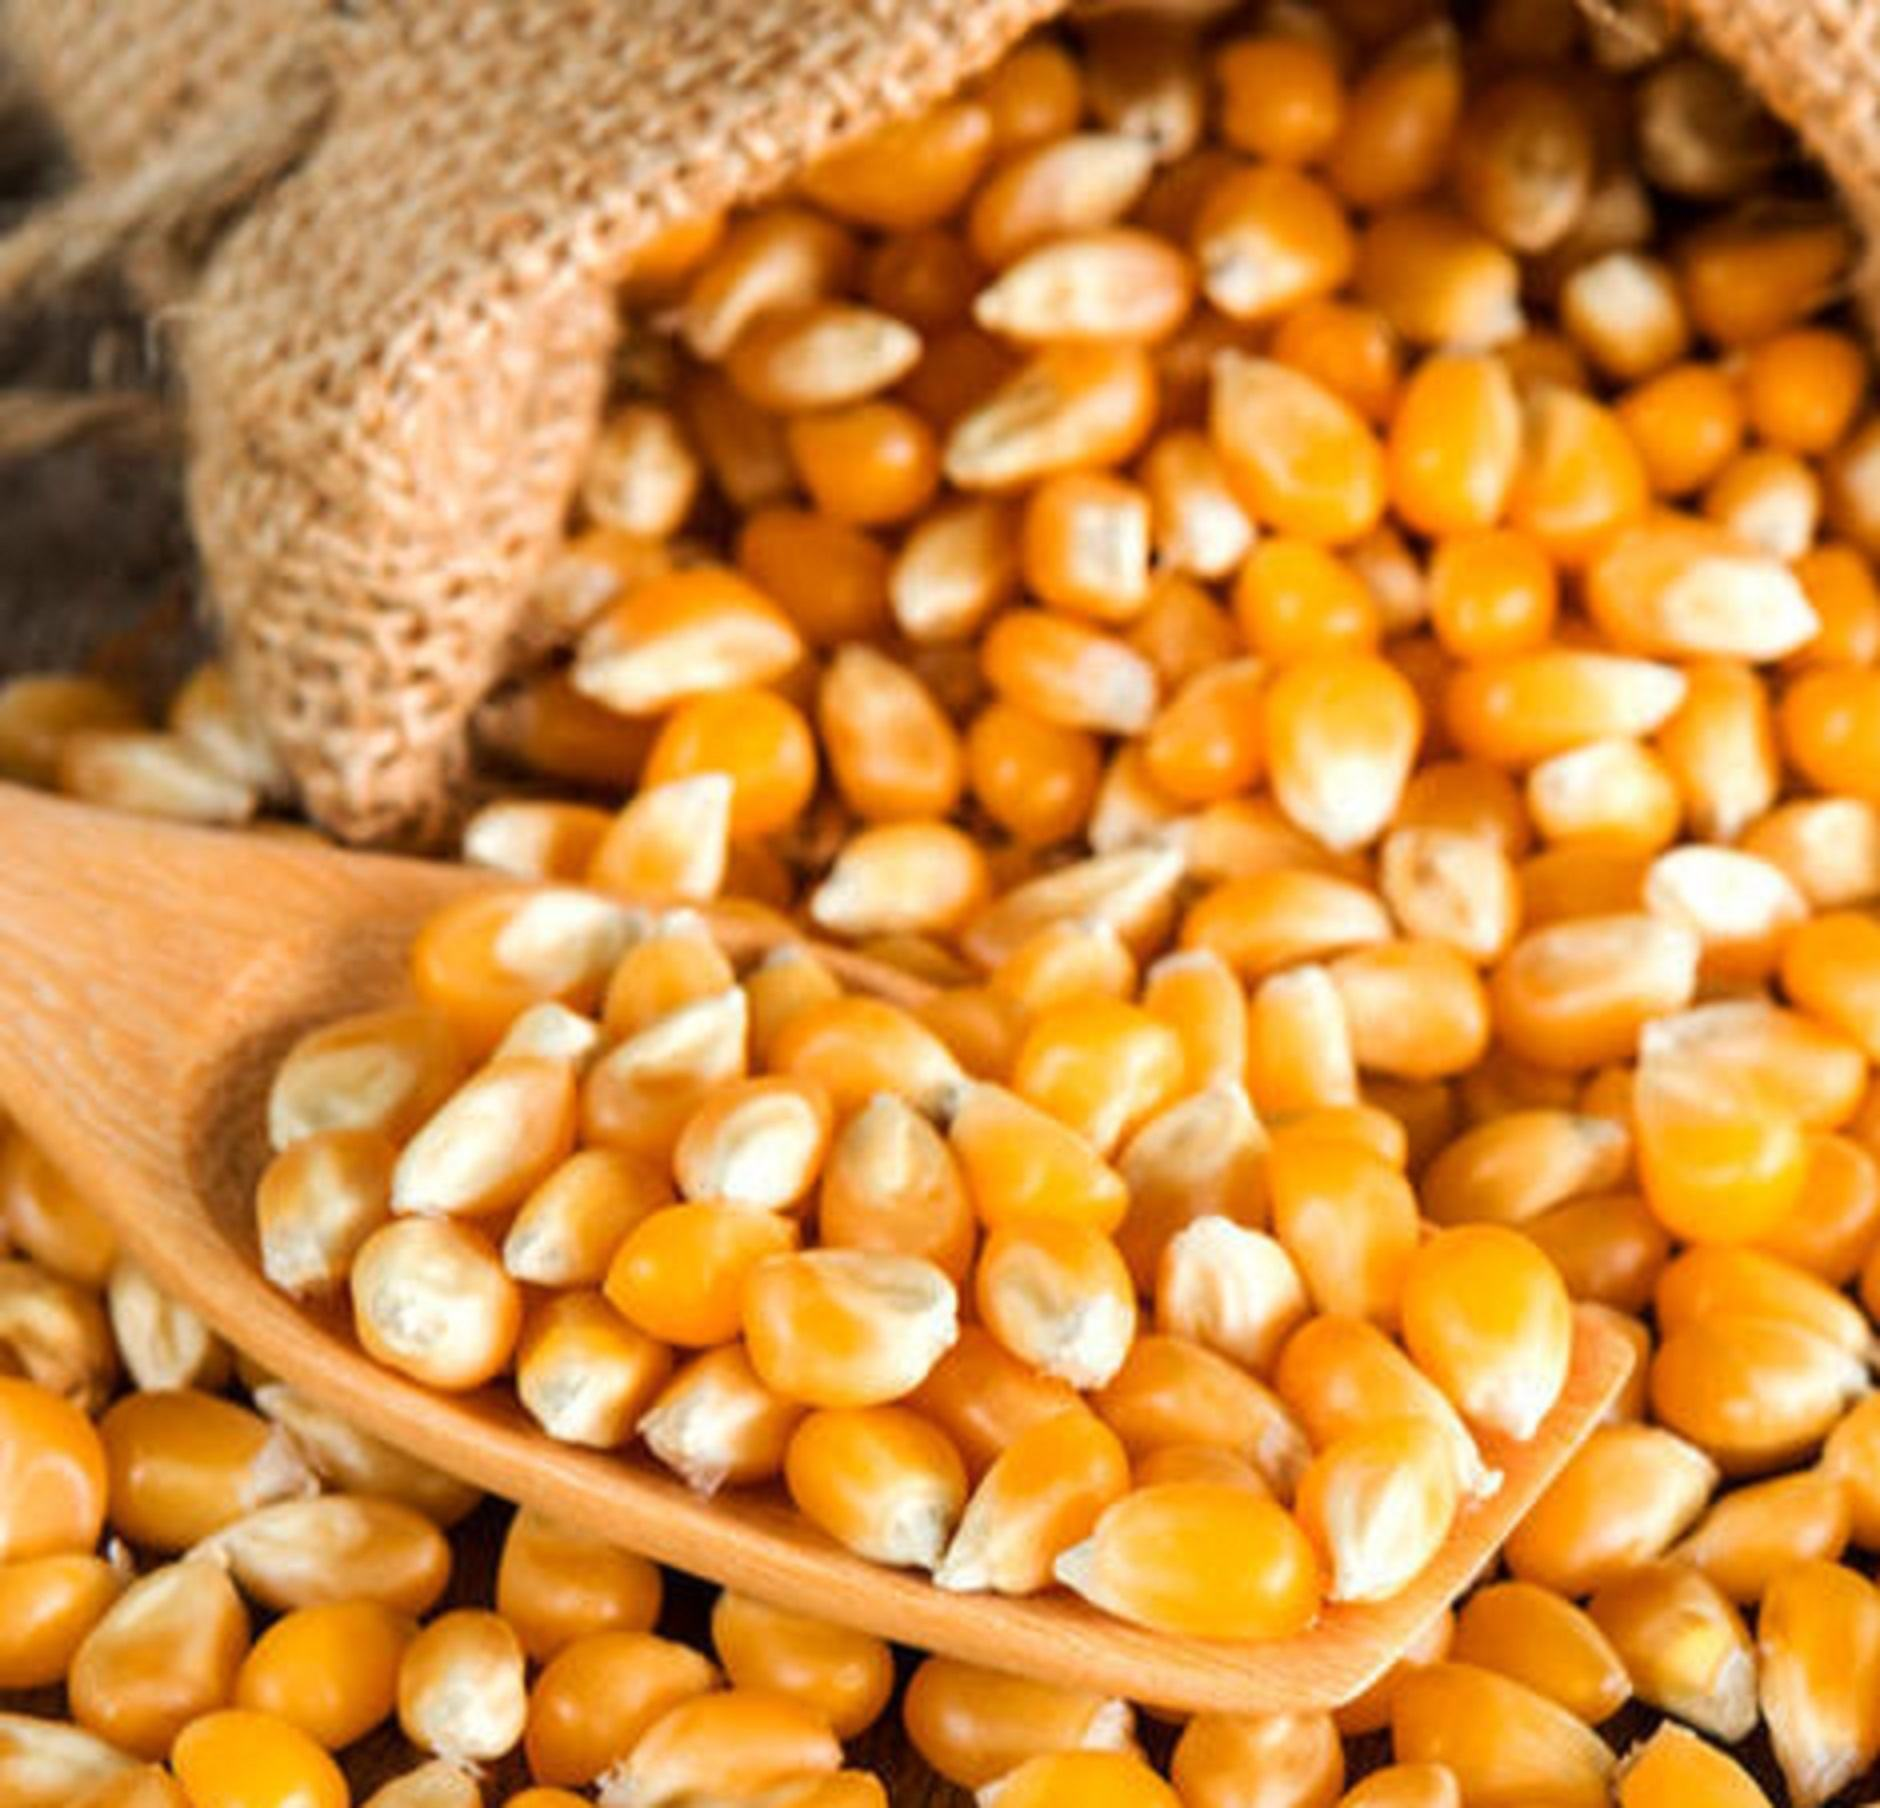 Wholesale Canned Yellow Corn & White Corn/Maize for Human & Animal Feed